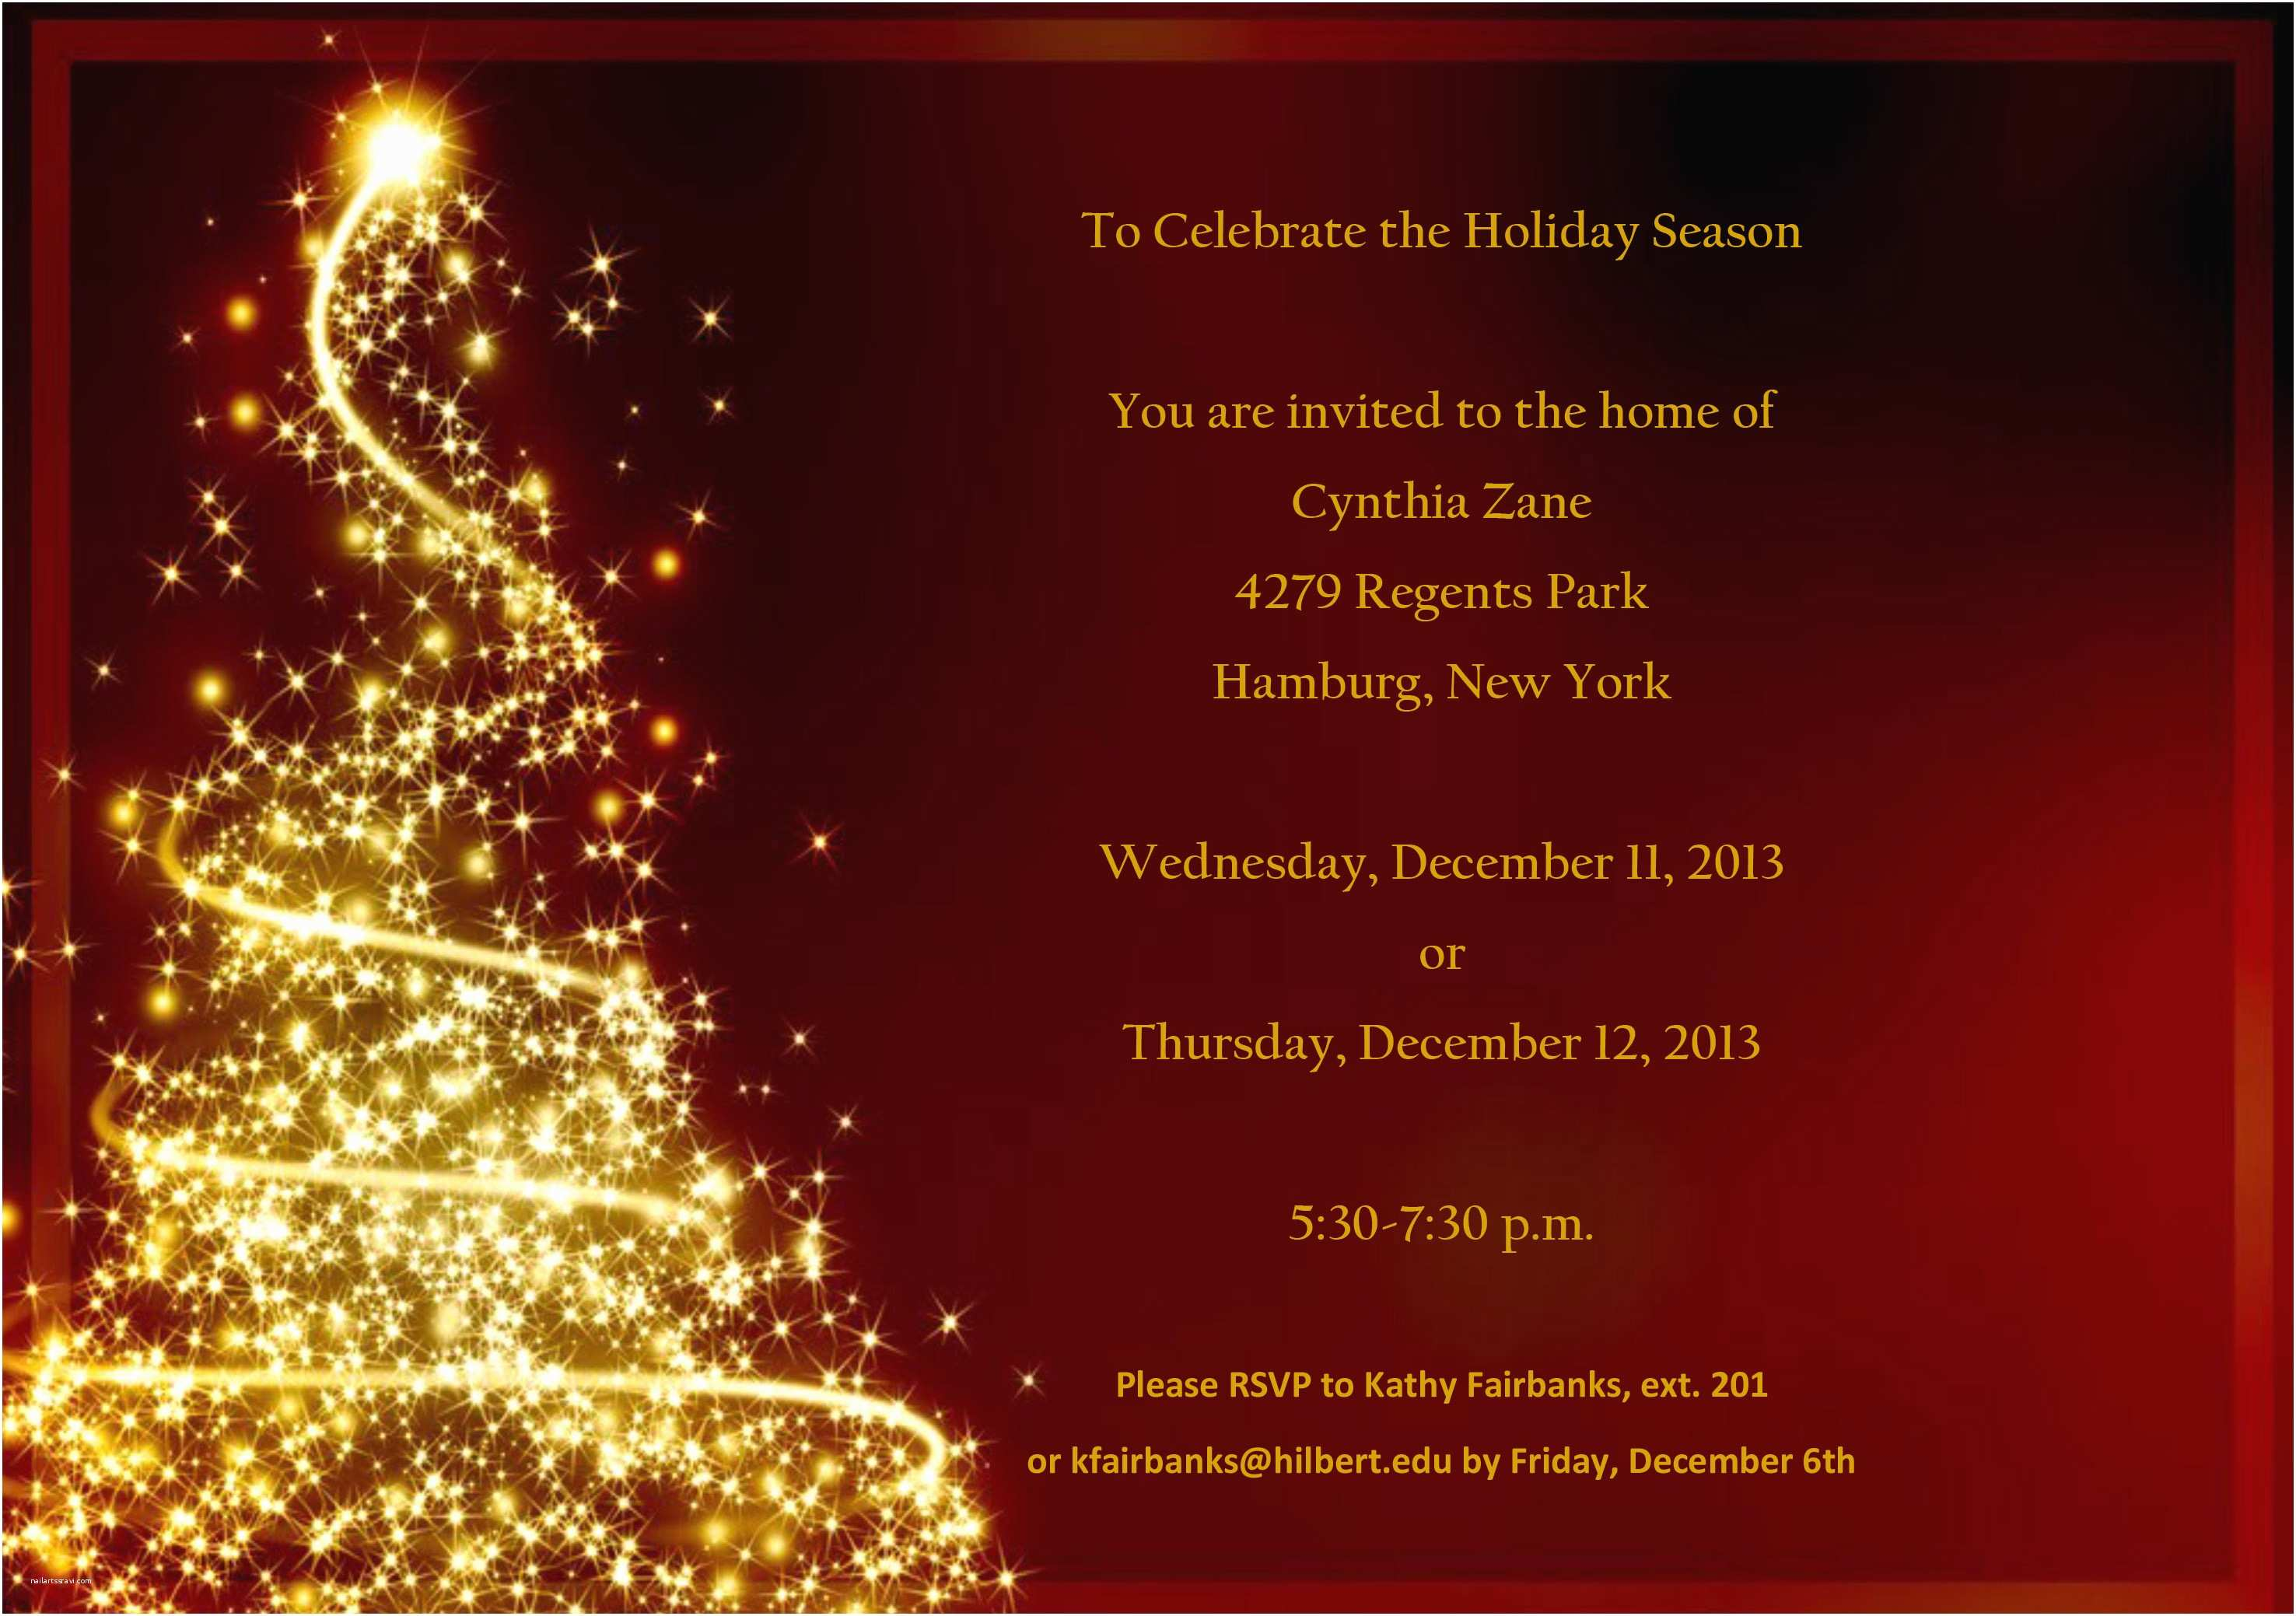 Holiday Party Invitation Christmas Party Invitation Templates Free Download